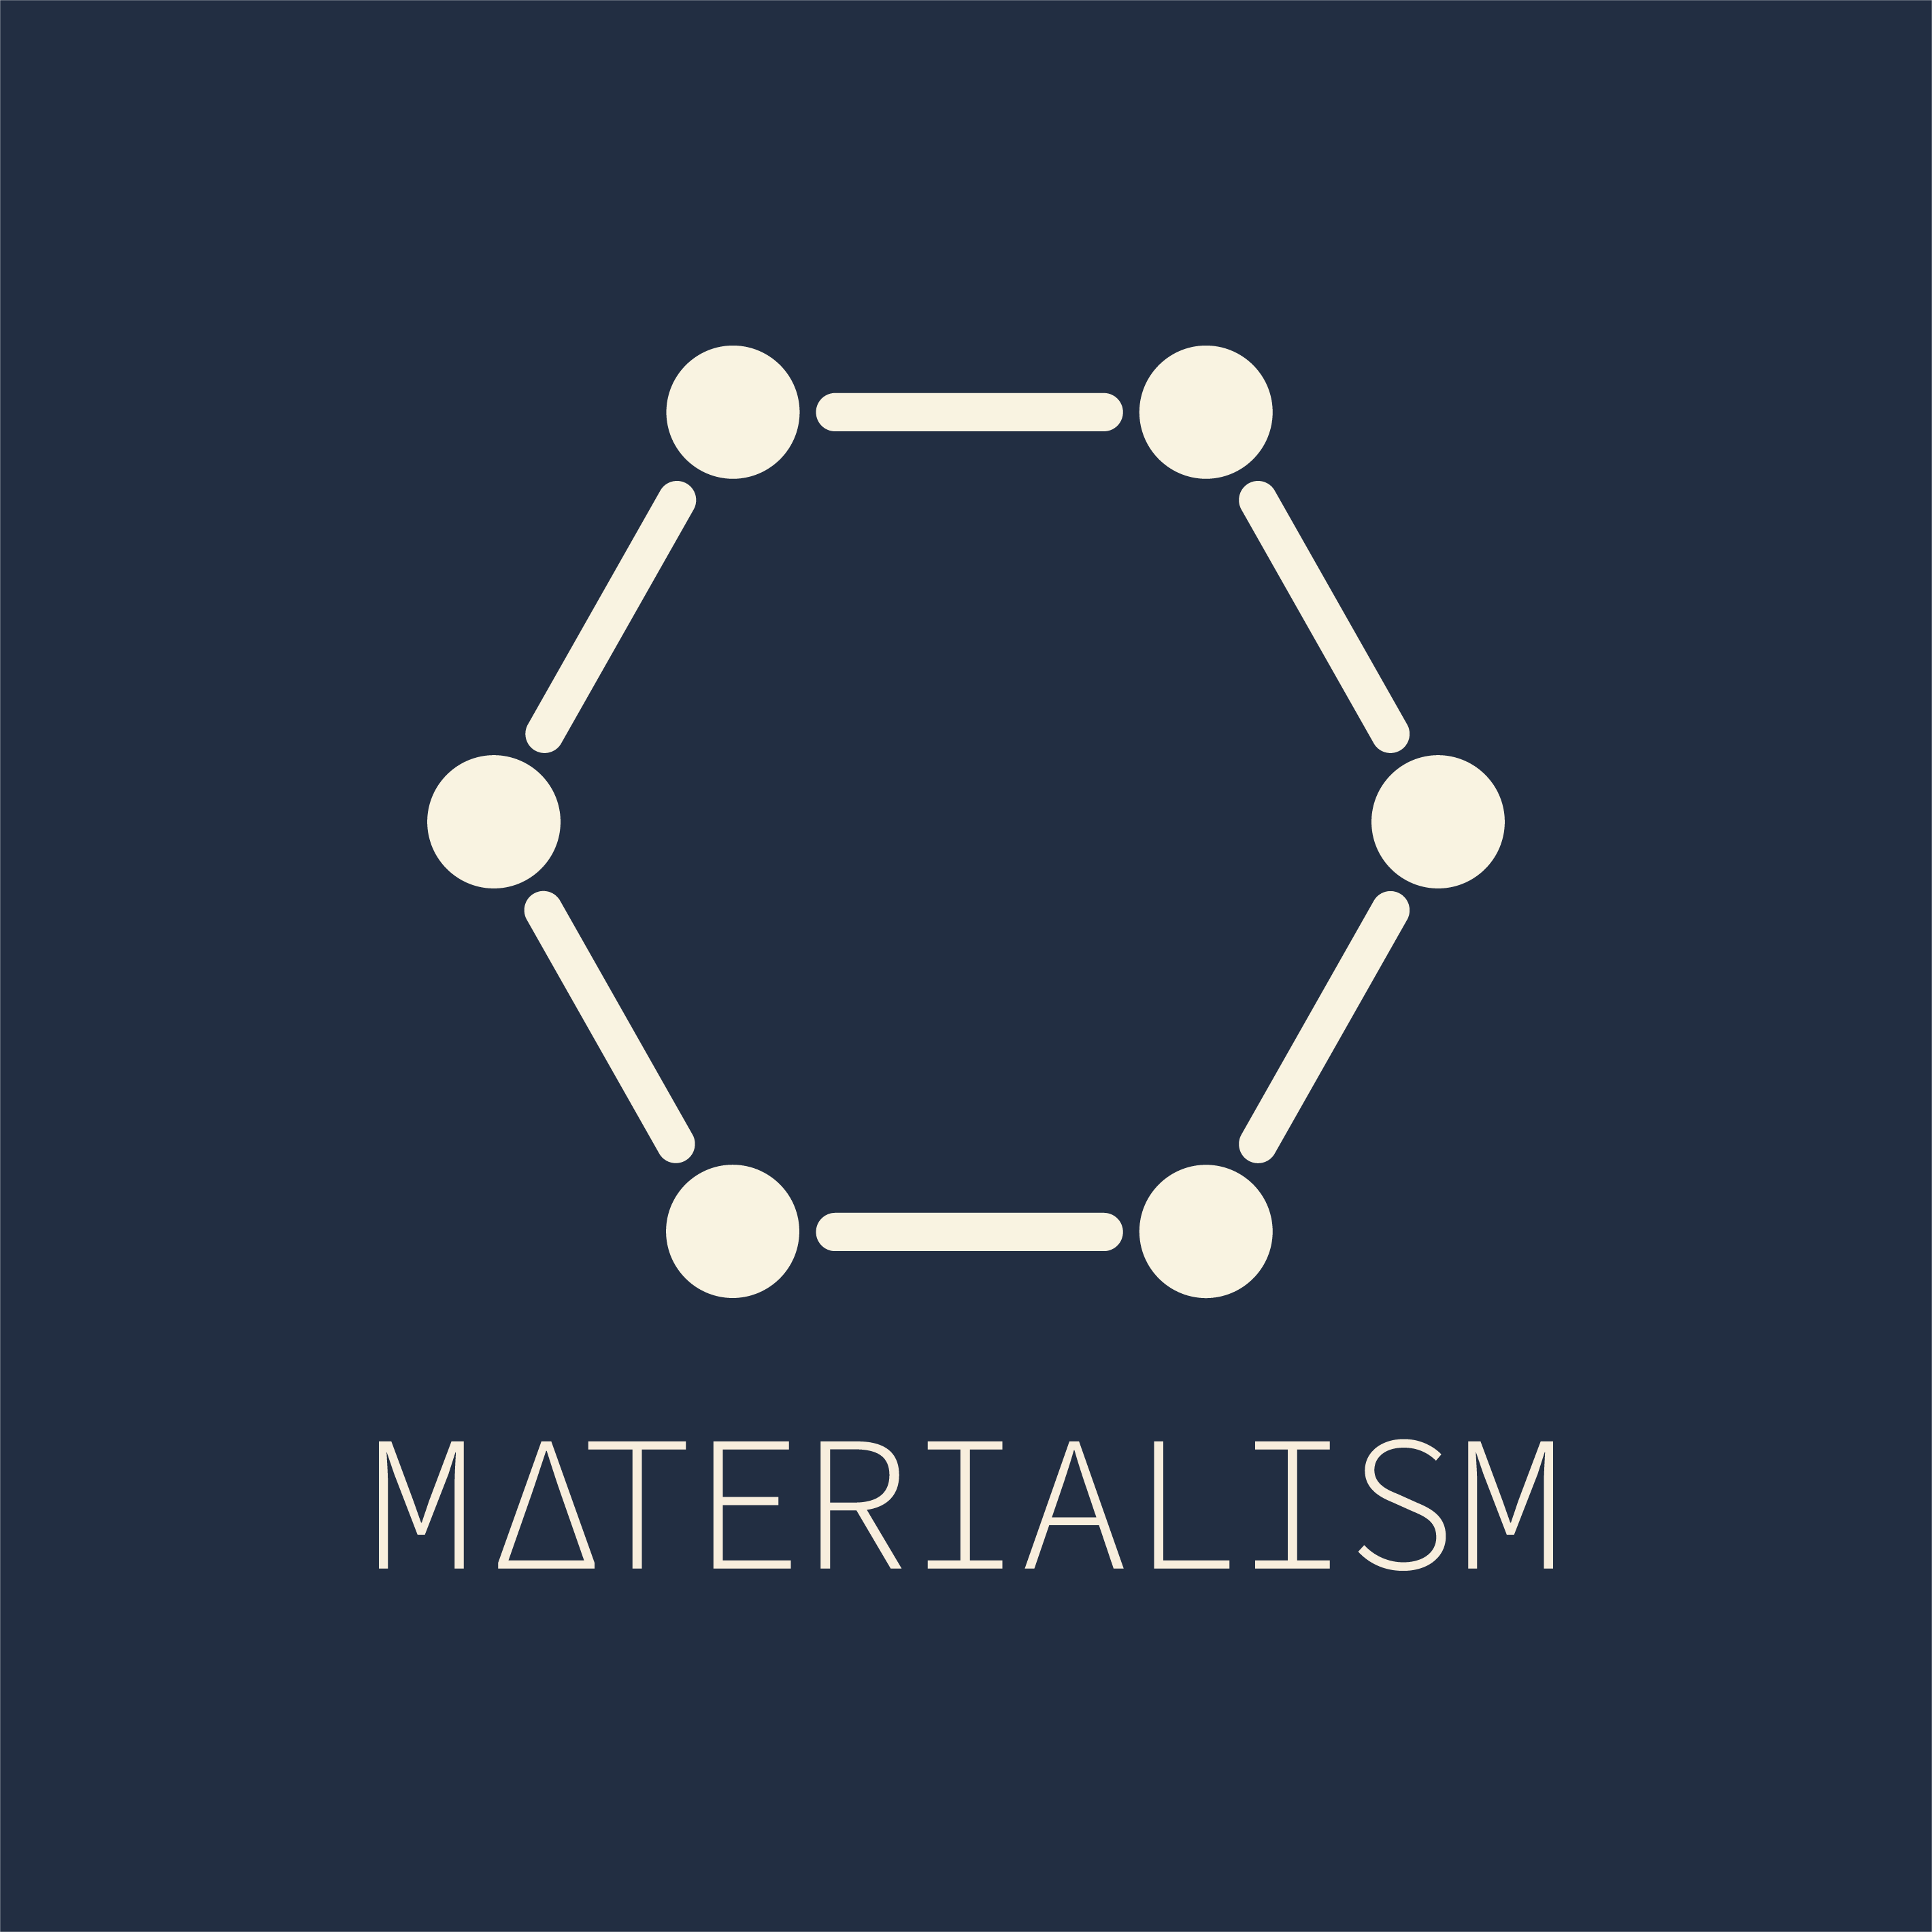 Materialism: A Materials Science Podcast